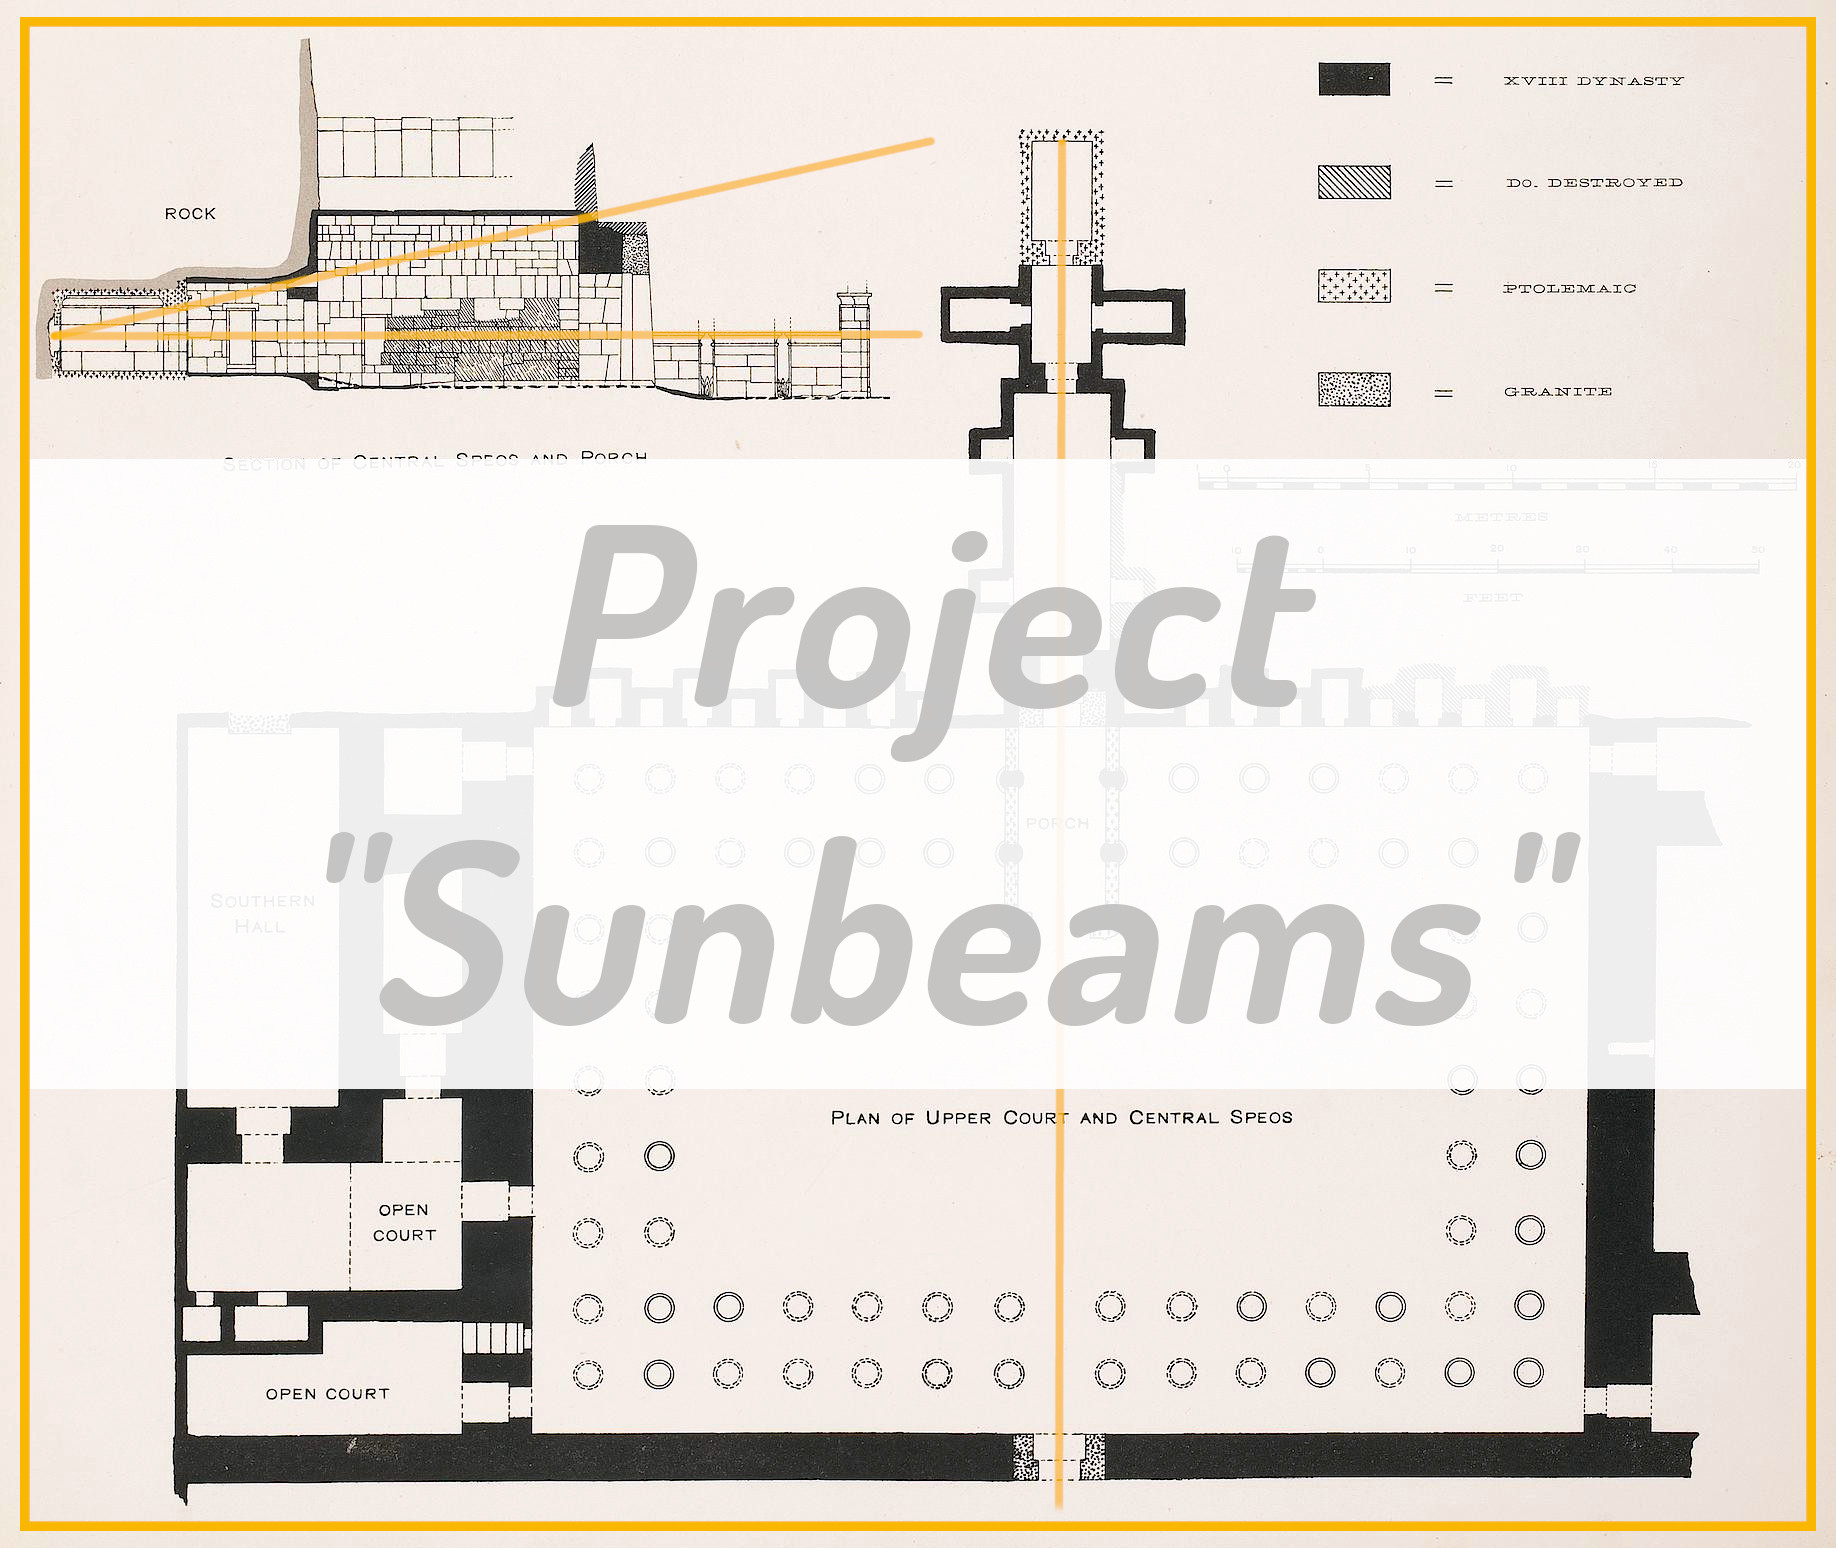 Project picture of the sunbeams project